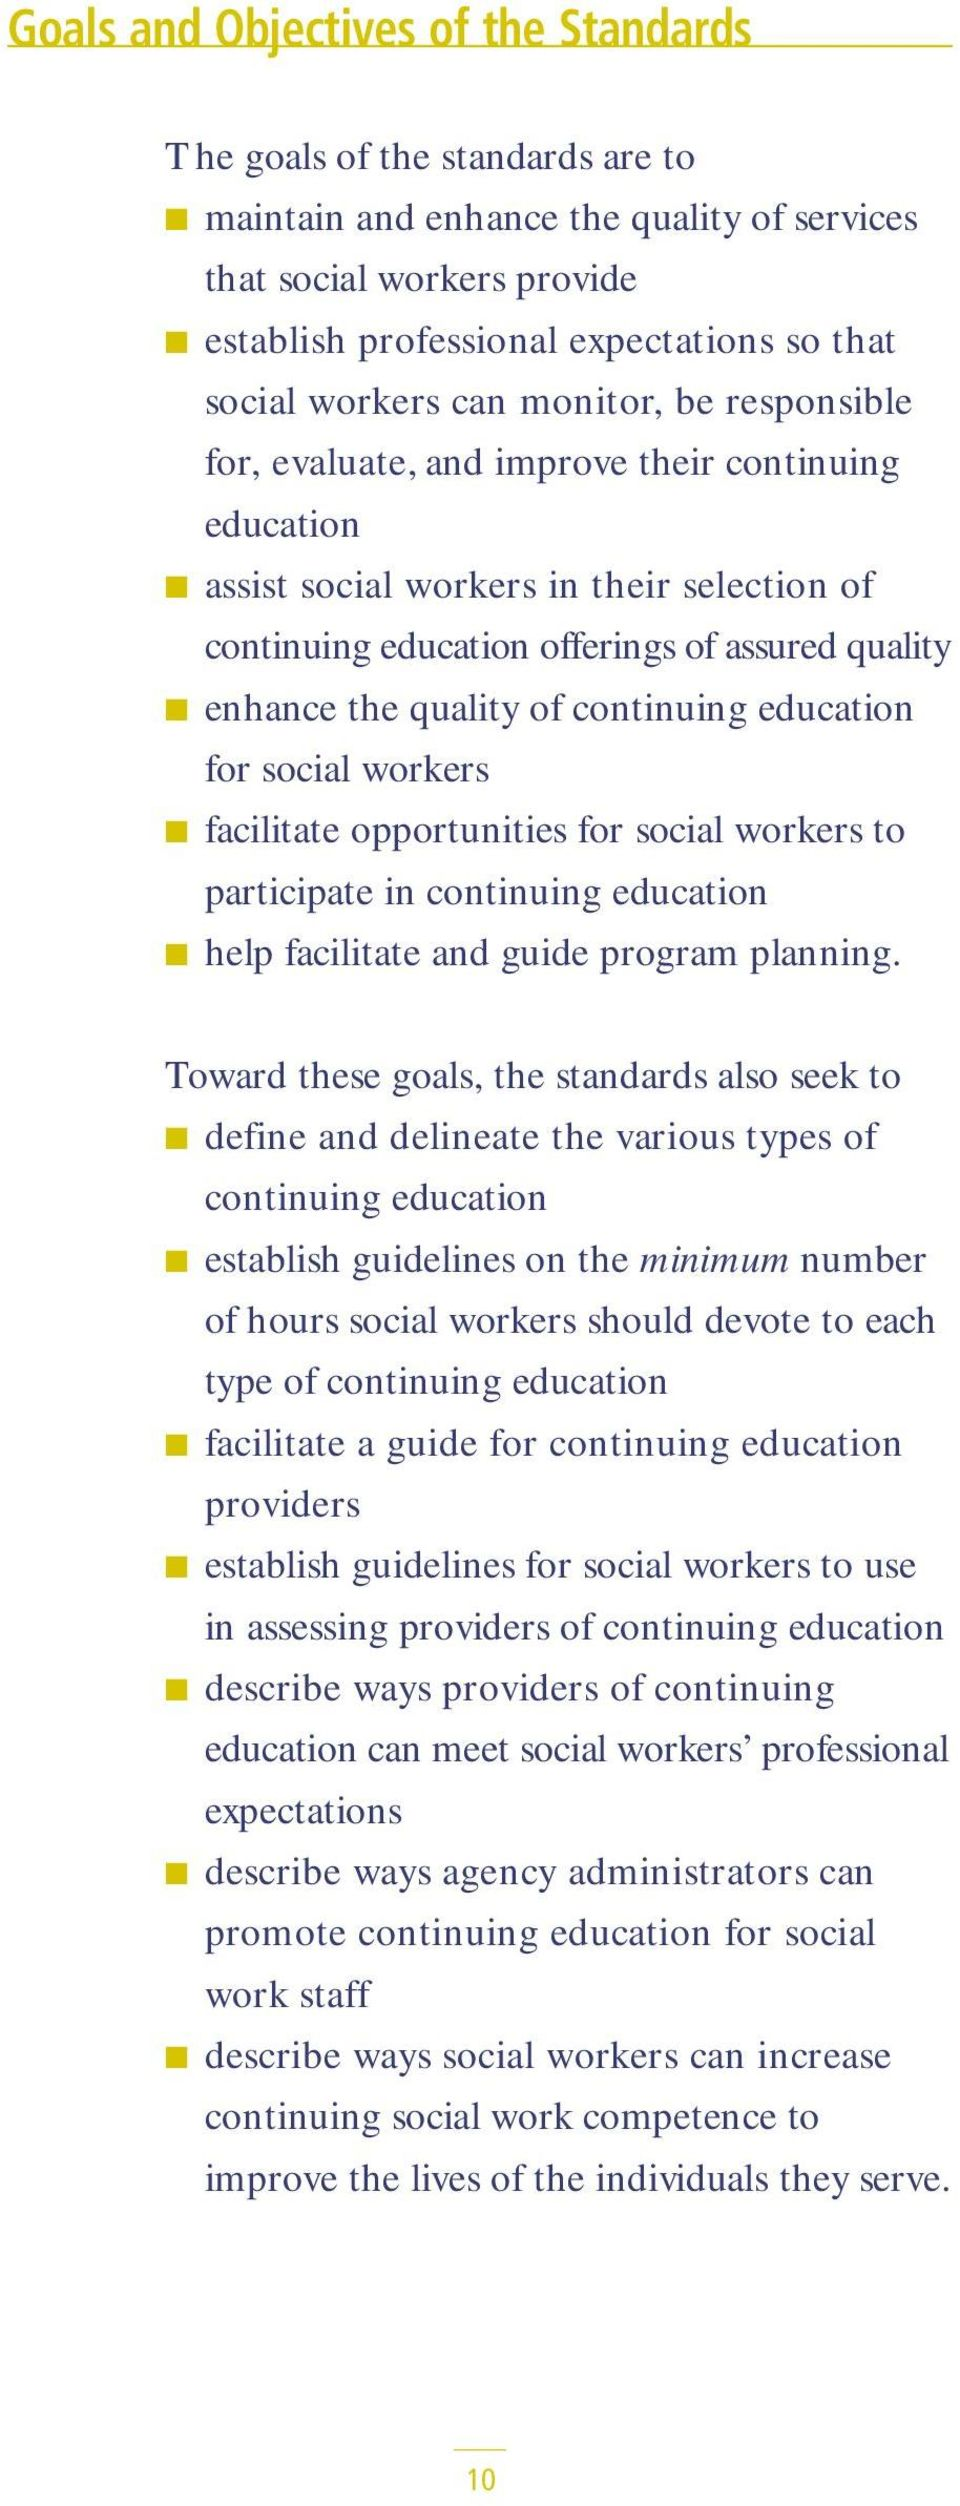 quality of continuing education for social workers facilitate opportunities for social workers to participate in continuing education help facilitate and guide program planning.